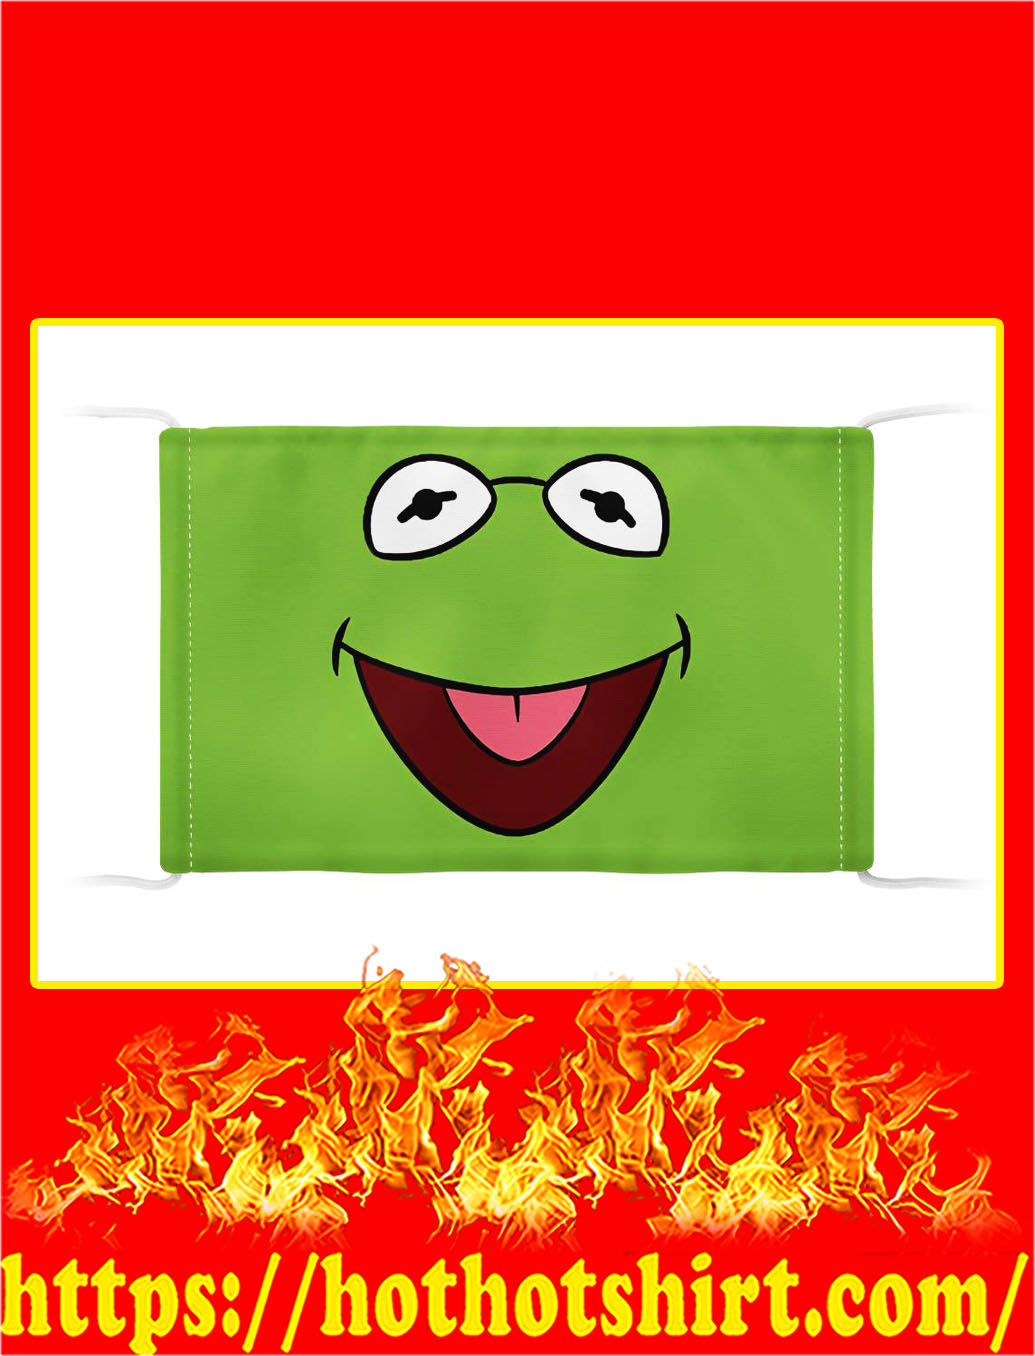 Kermit the frog face mask